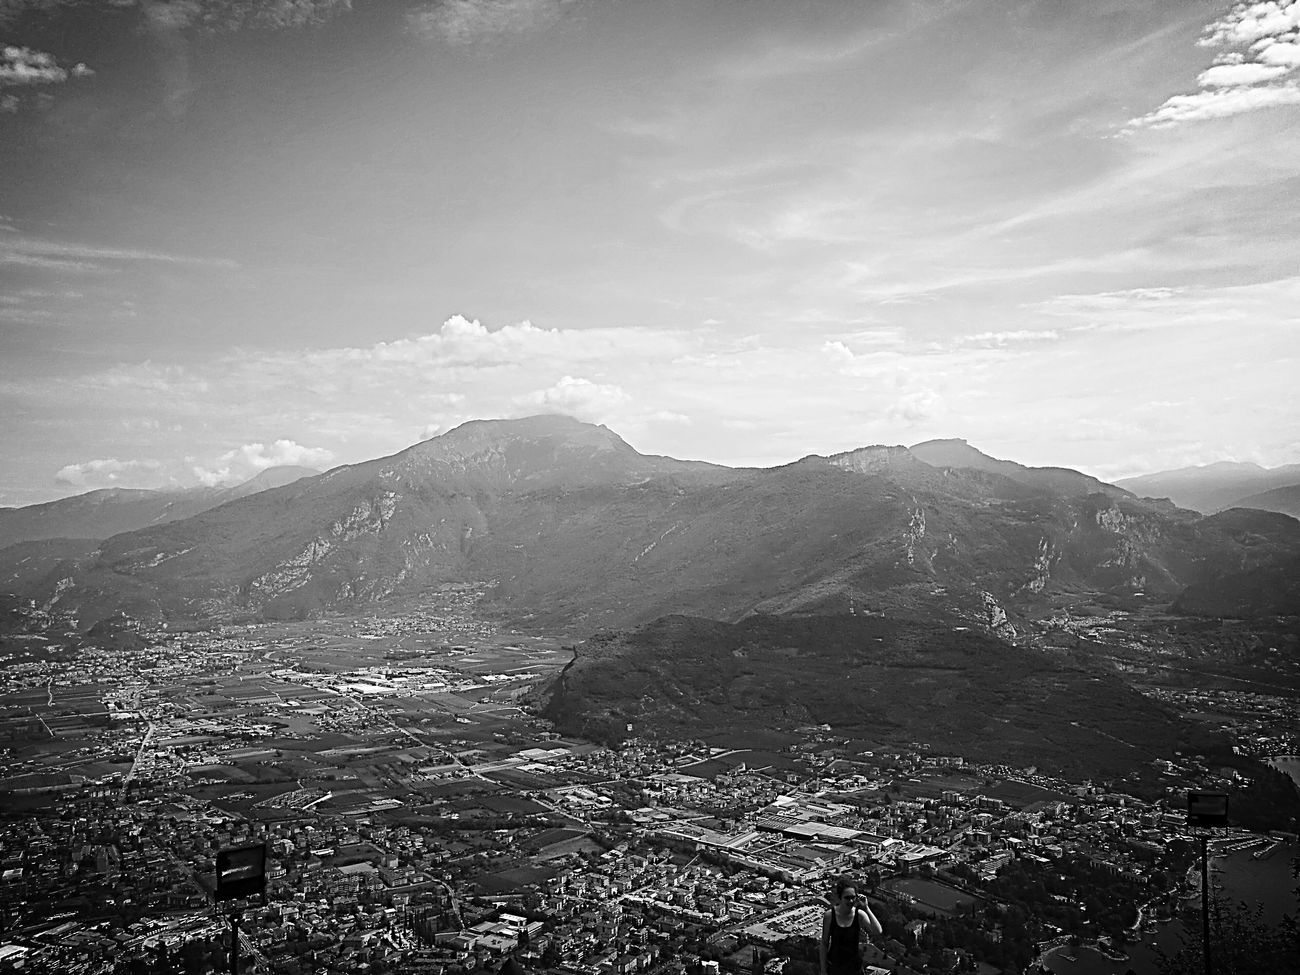 Mountain Landscape Nature Scenics Cloud - Sky Beauty In Nature Outdoors Sky Day No People Nature Italy Travel Destinations Photography Panorama View Prospective Altogarda Rivadelgarda Garda Lake Italy Black&white Blackandwhite Photography Riva Del Garda Naturlover Photographie  Arco (tn)